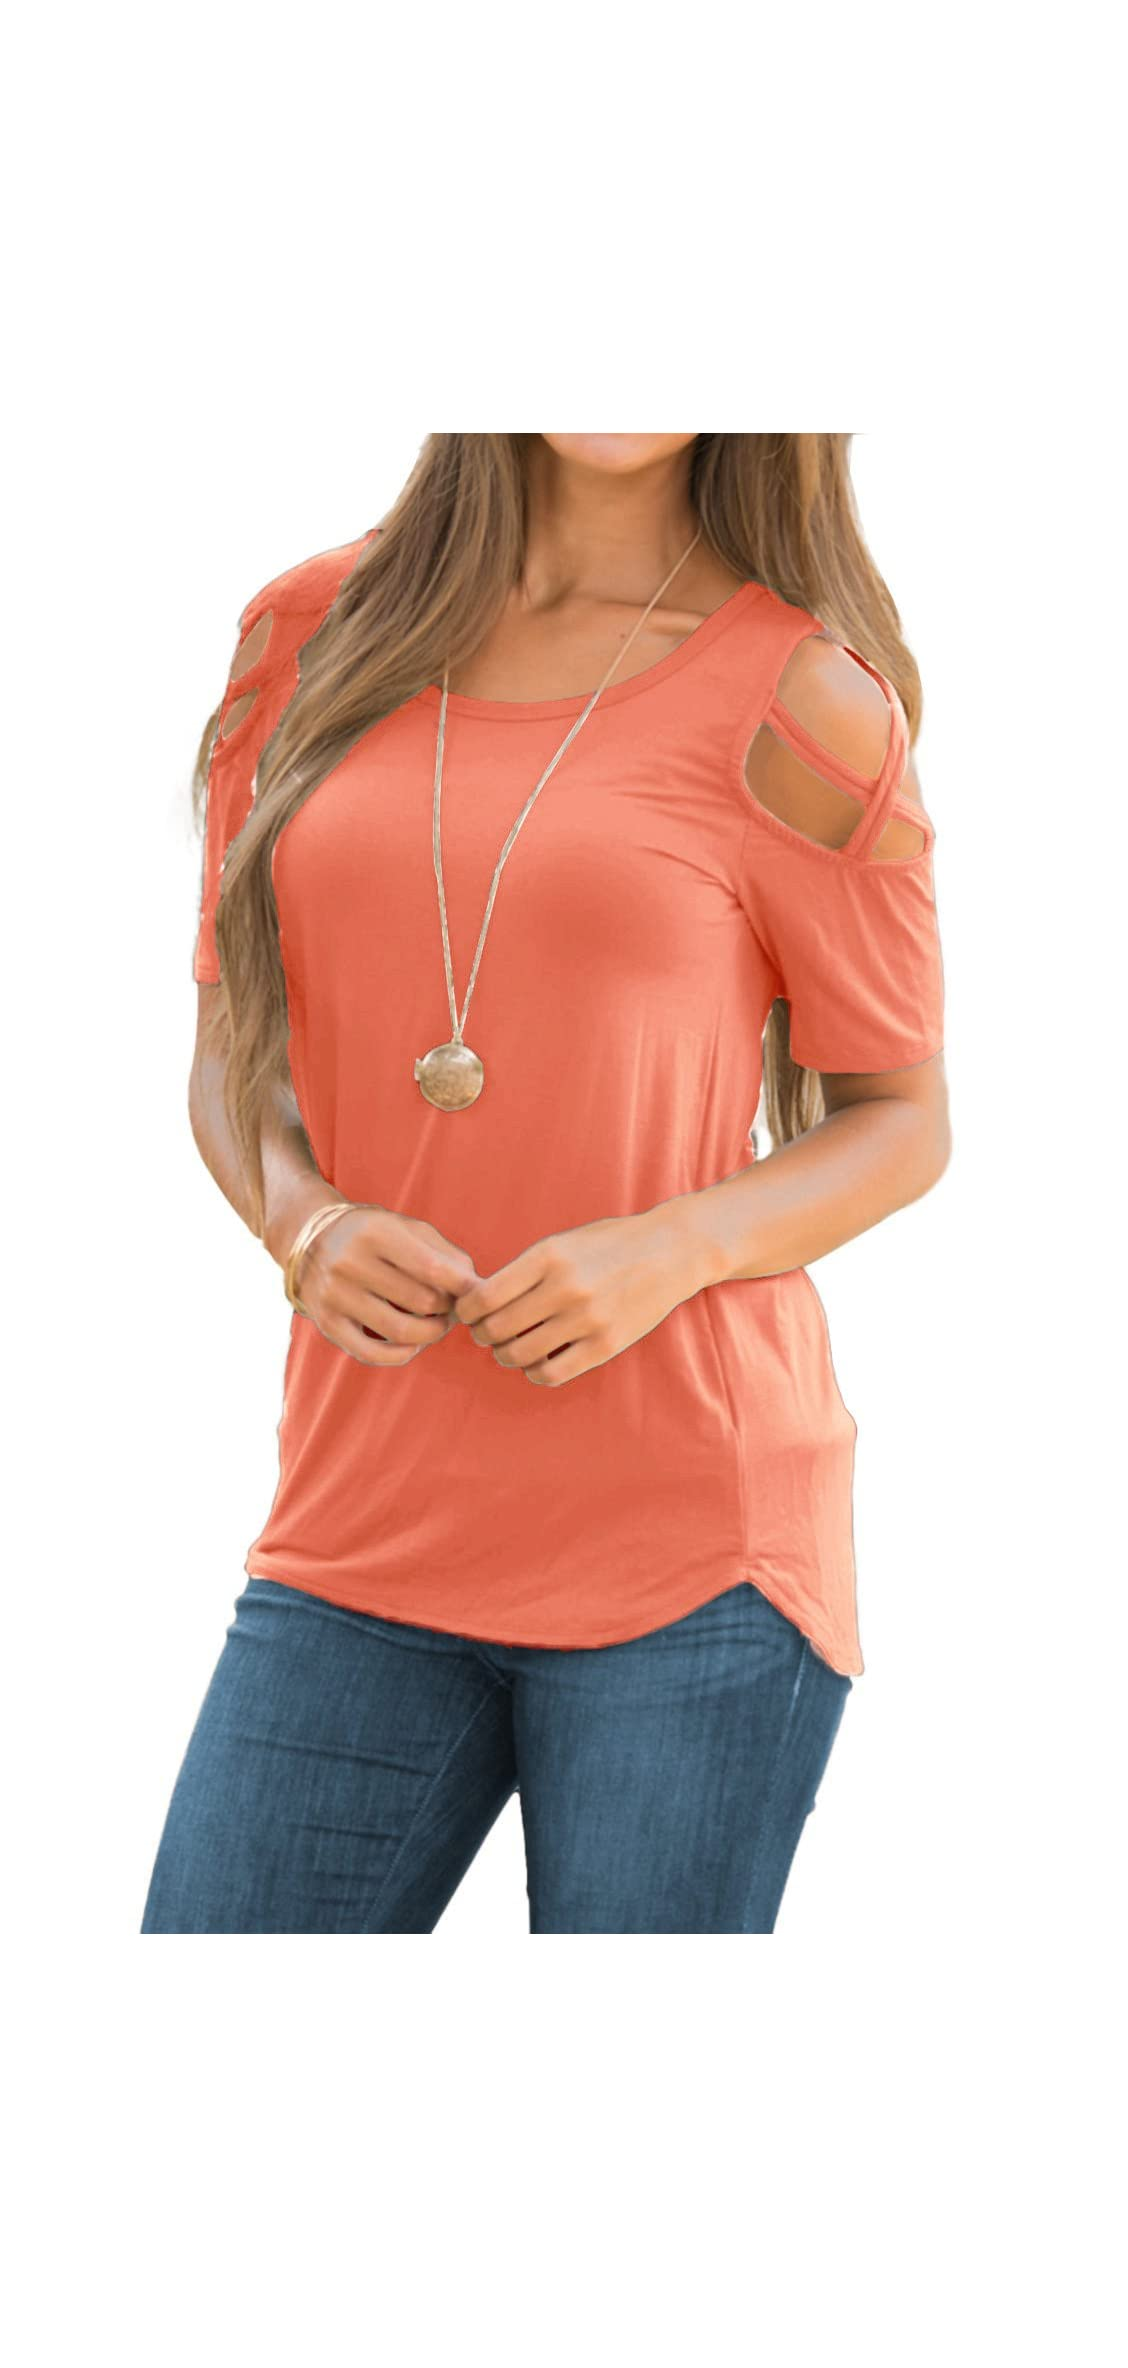 Womens Loose Strappy Cold Shoulder Tops Basic T Shirts